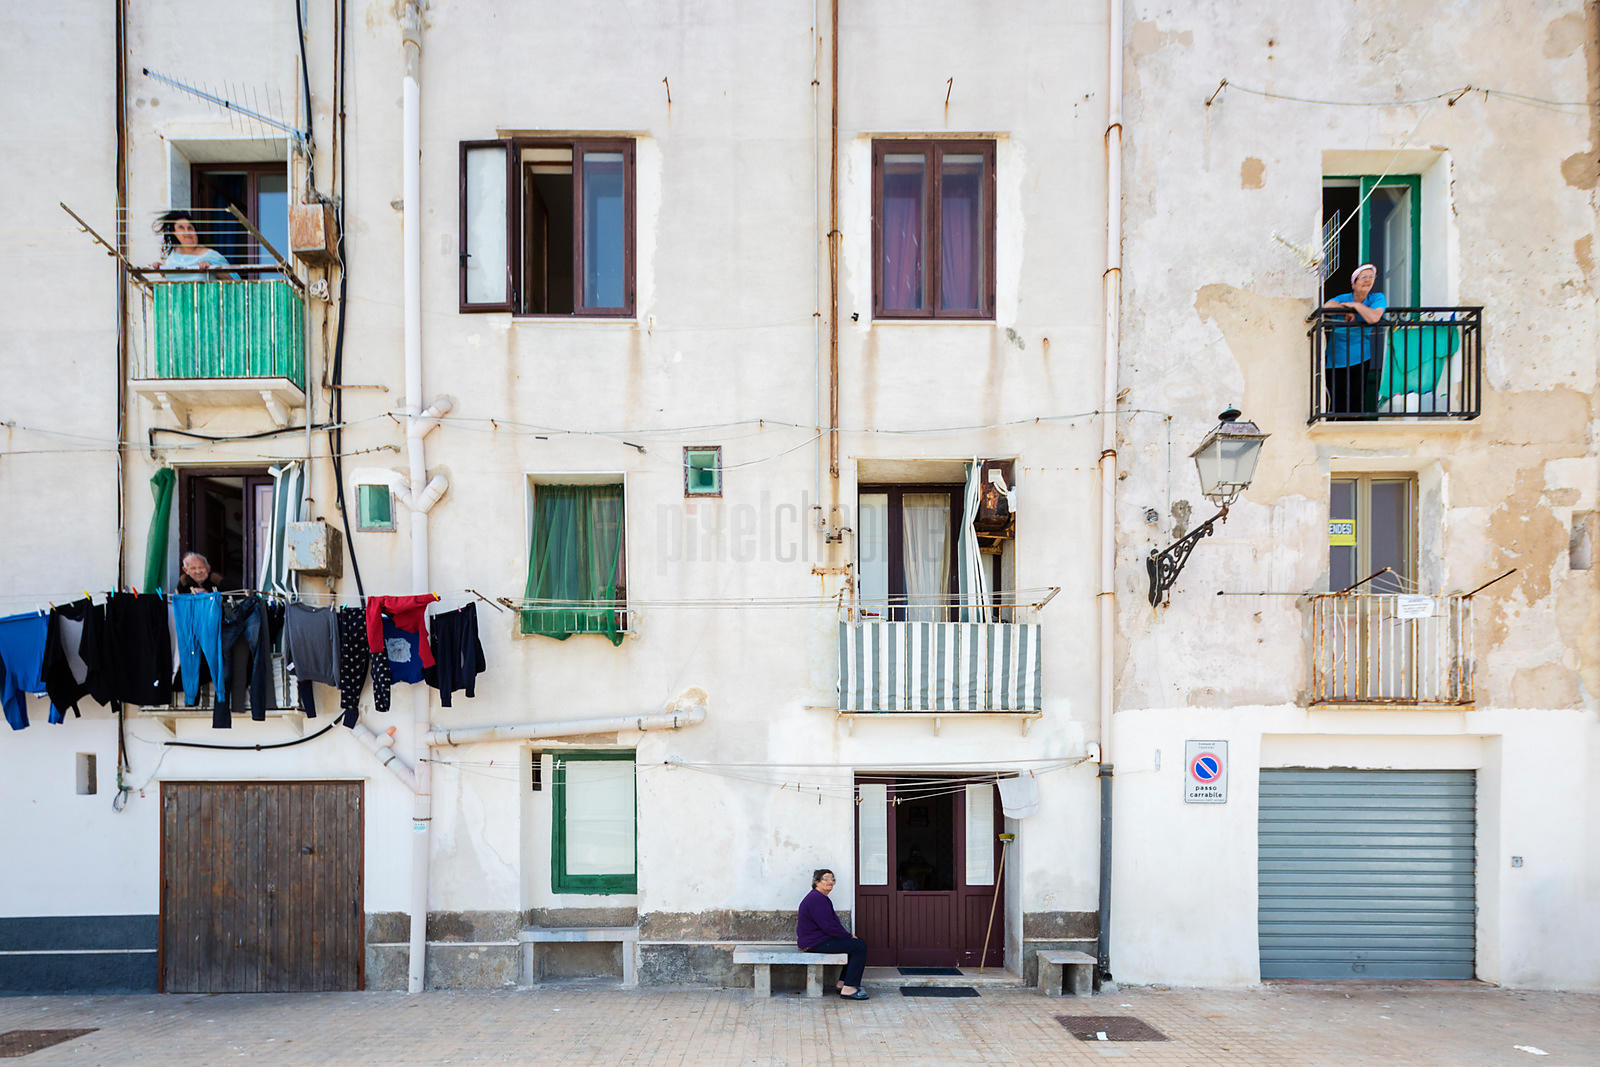 Locals Standing in the Balconies of their Homes